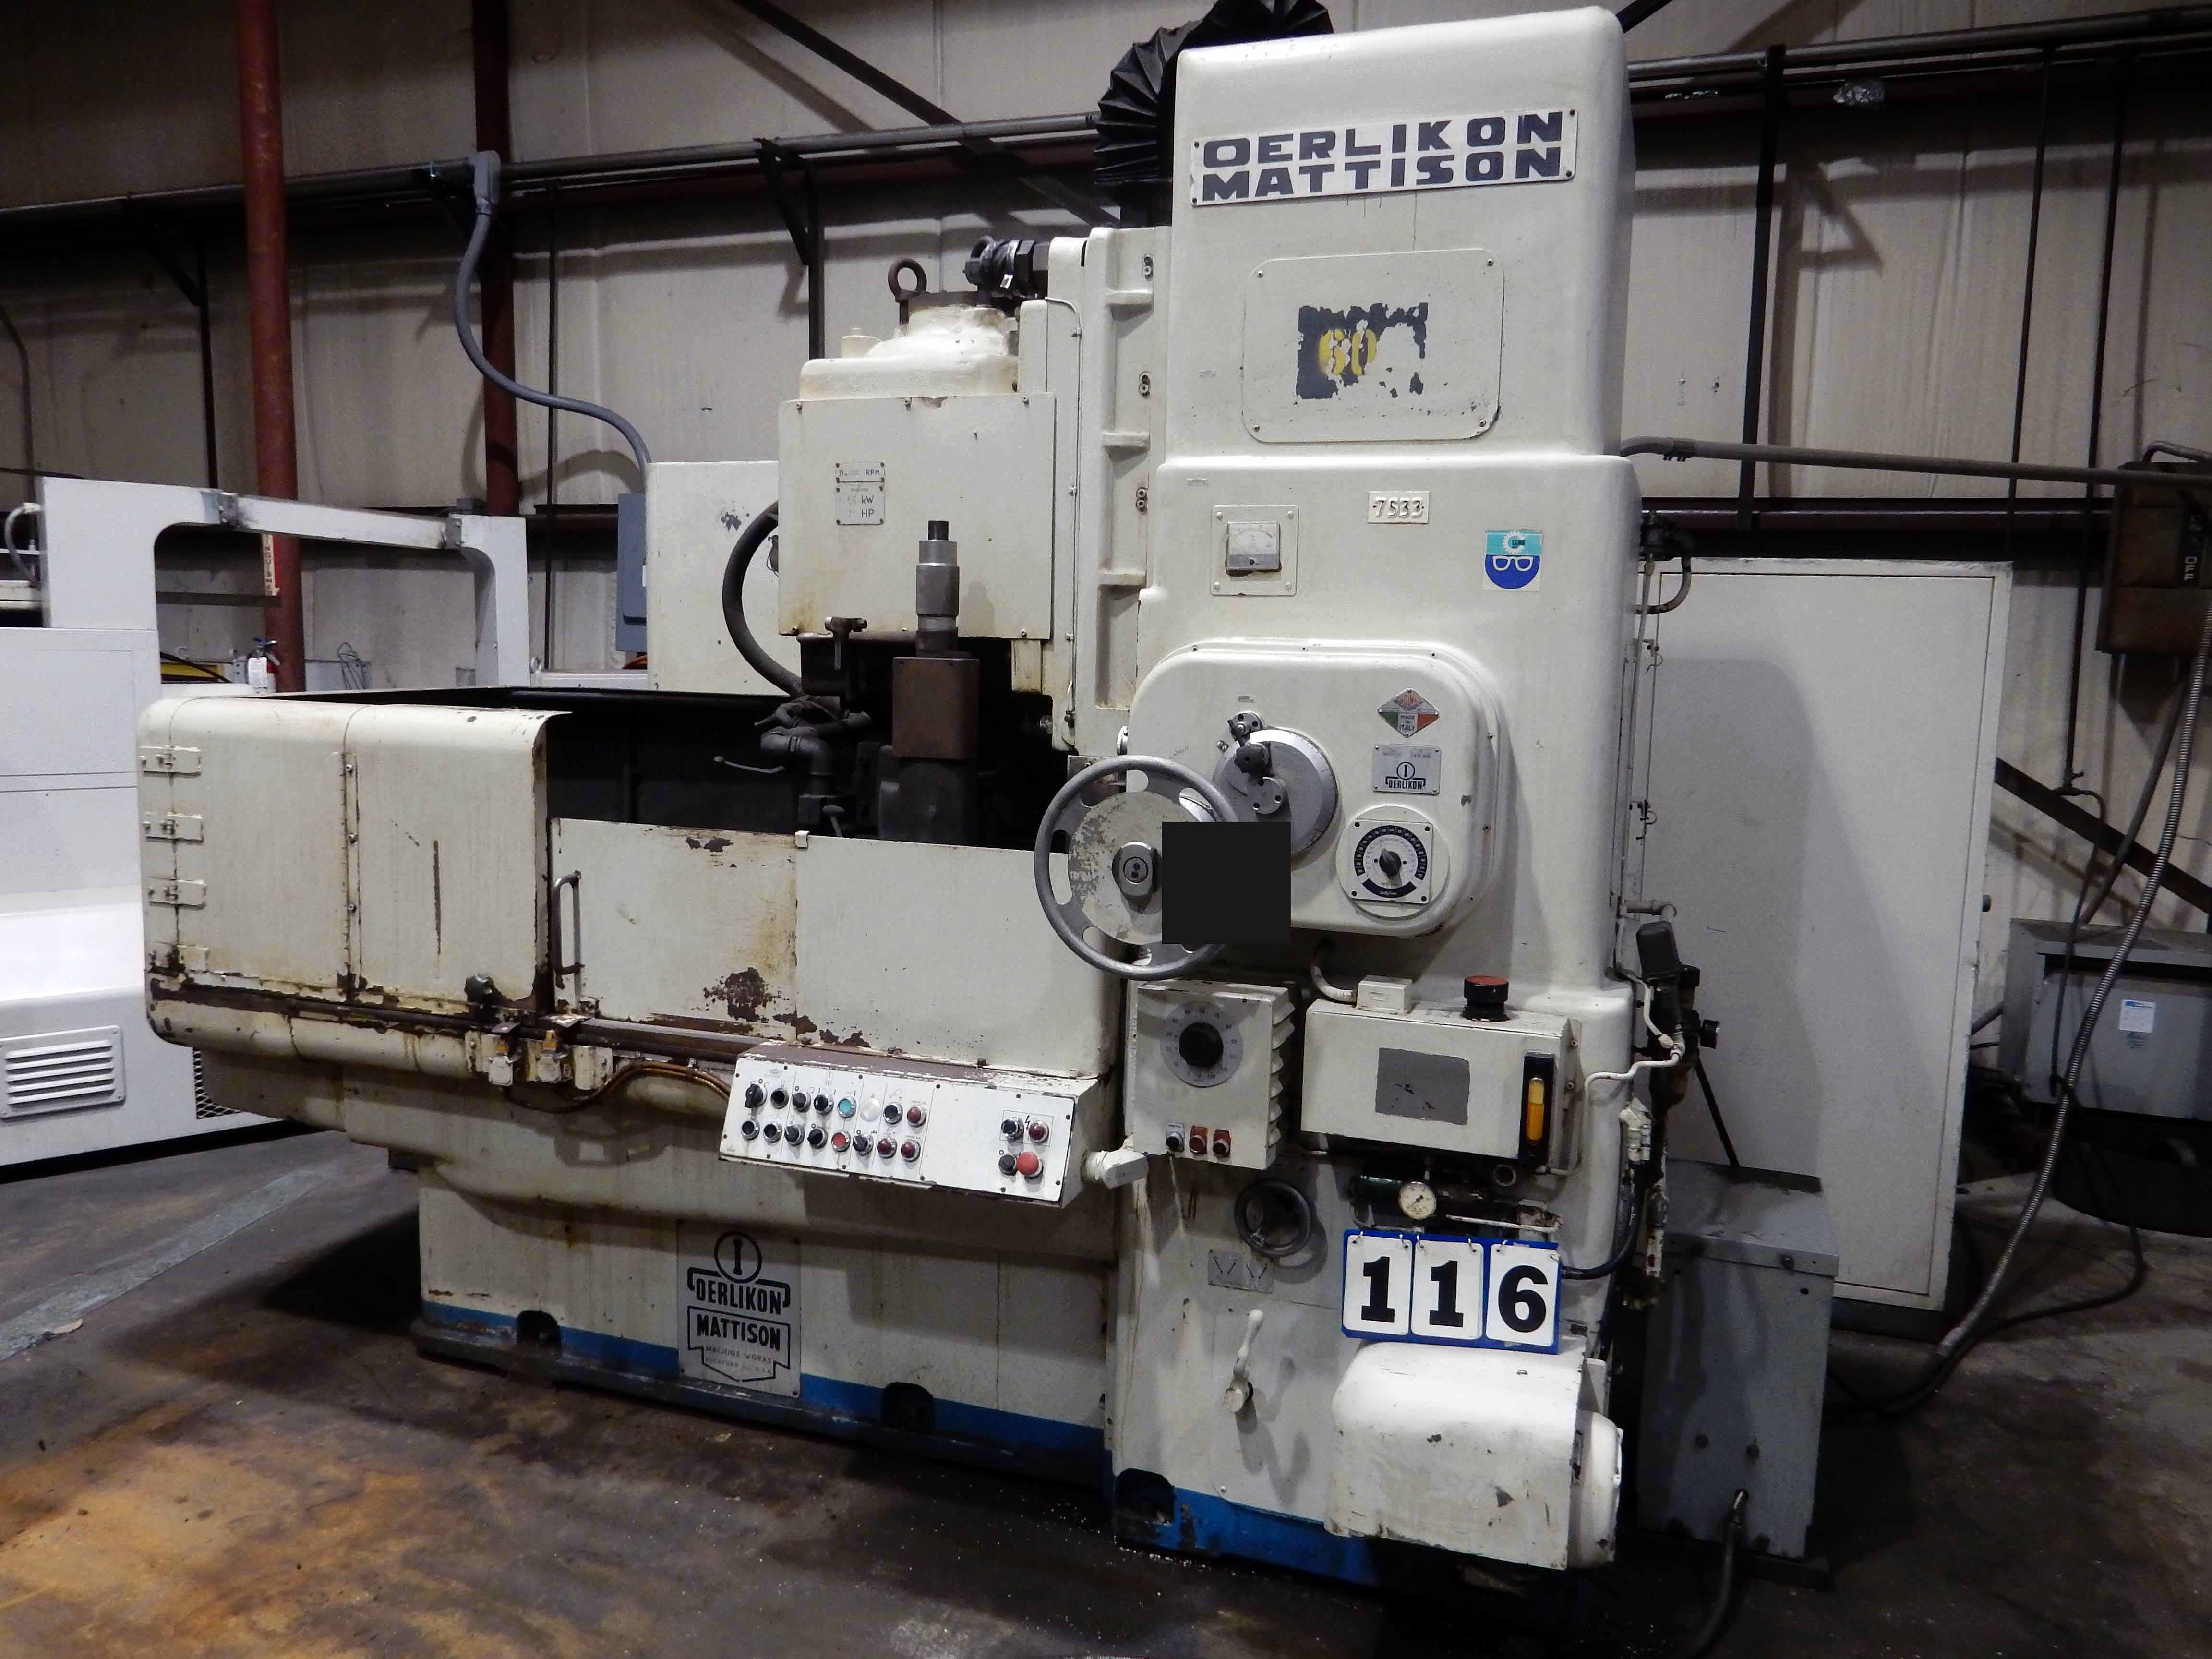 "Lot 52 - GRINDER, OERLIKON MATTISON MDL. ROTARY-Z4, 36"" magnetic chuck, S/N EV-24-0608 (must be removed by"